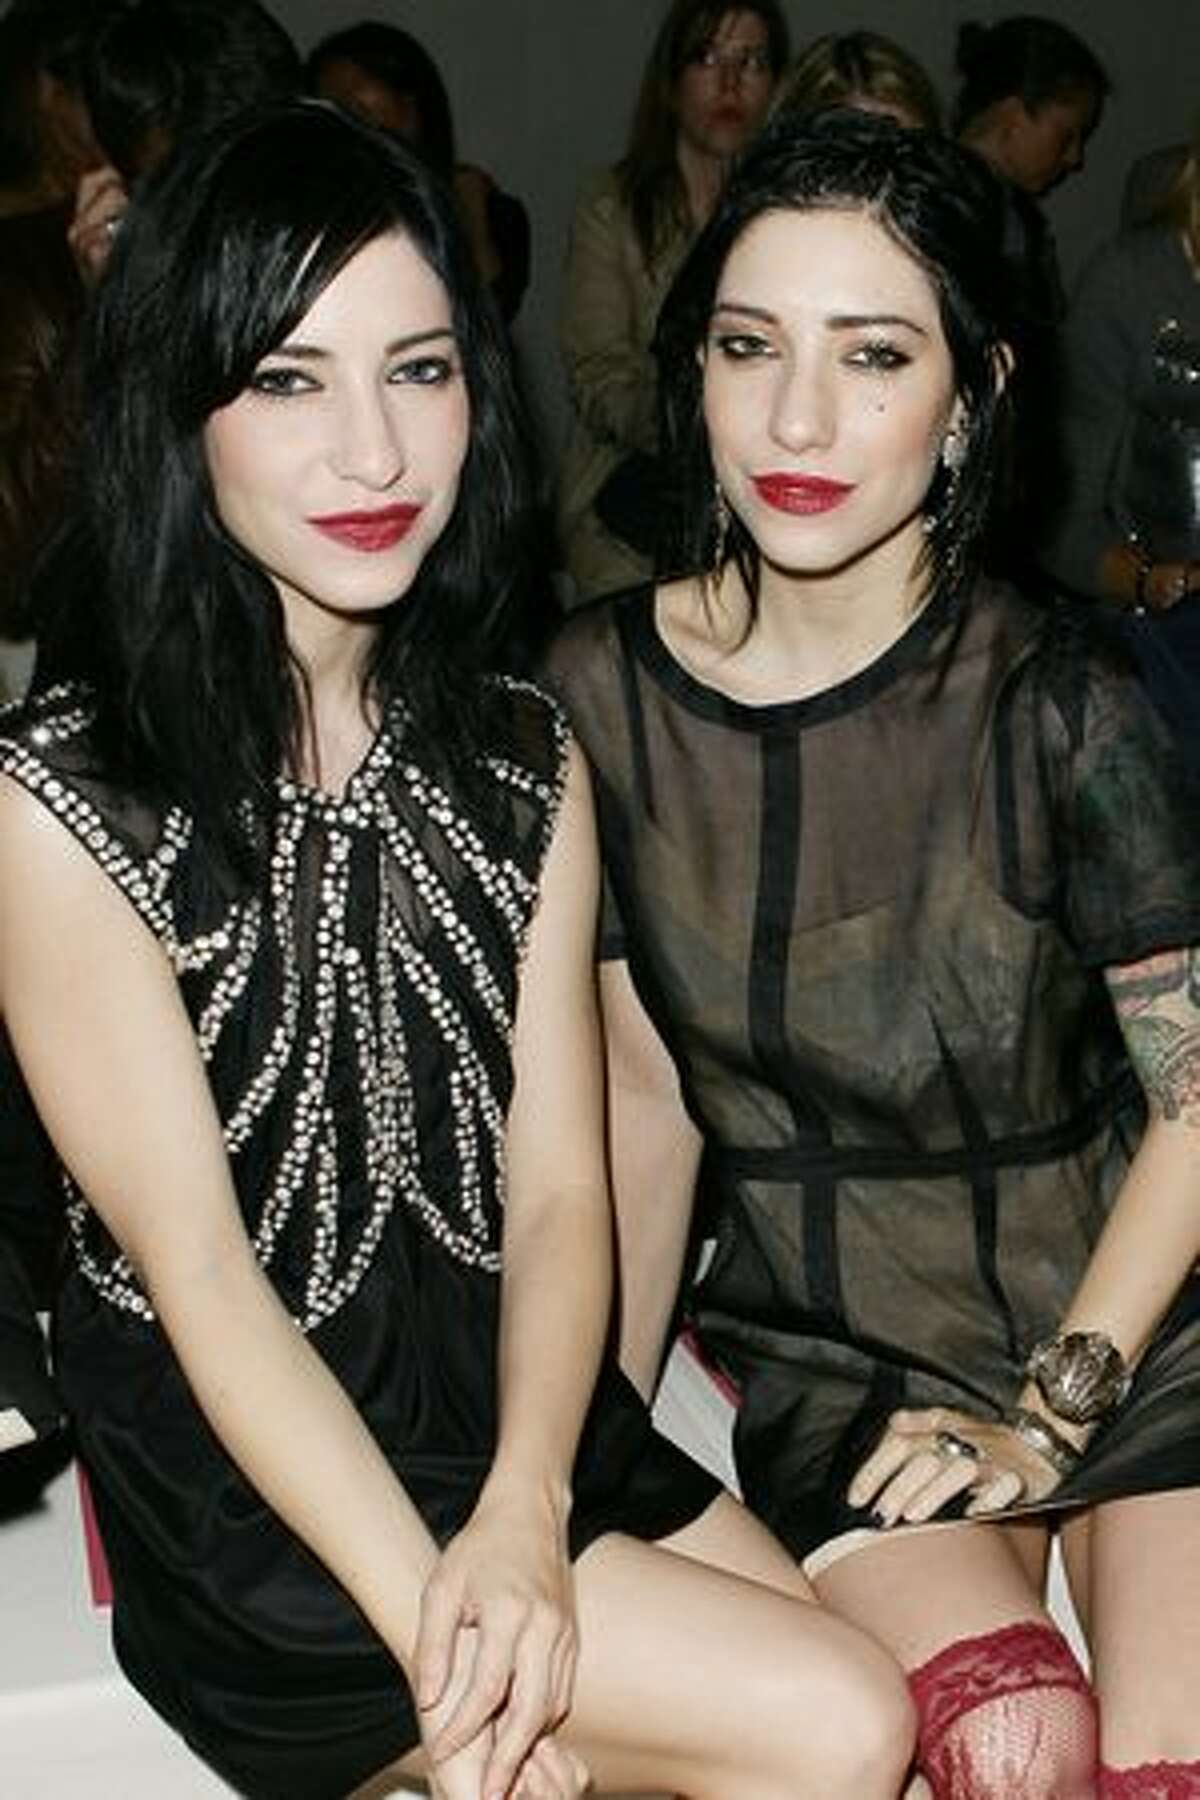 (L-R) Lisa Origliasso and Jessica Origliasso from the The Veronicas attends the DKNY Spring 2011 fashion show during Mercedes-Benz Fashion Week in New York City.